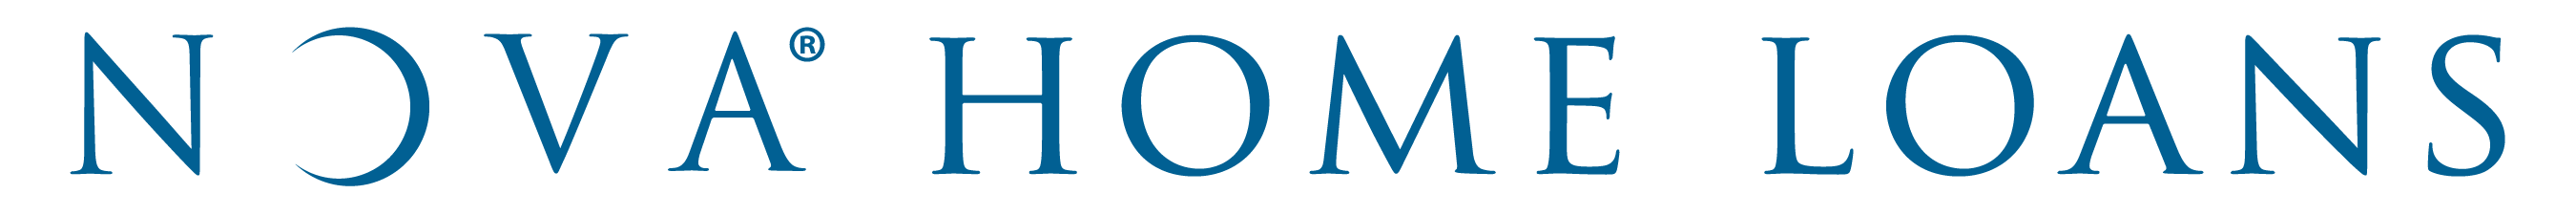 Nova Spanish Website Logo